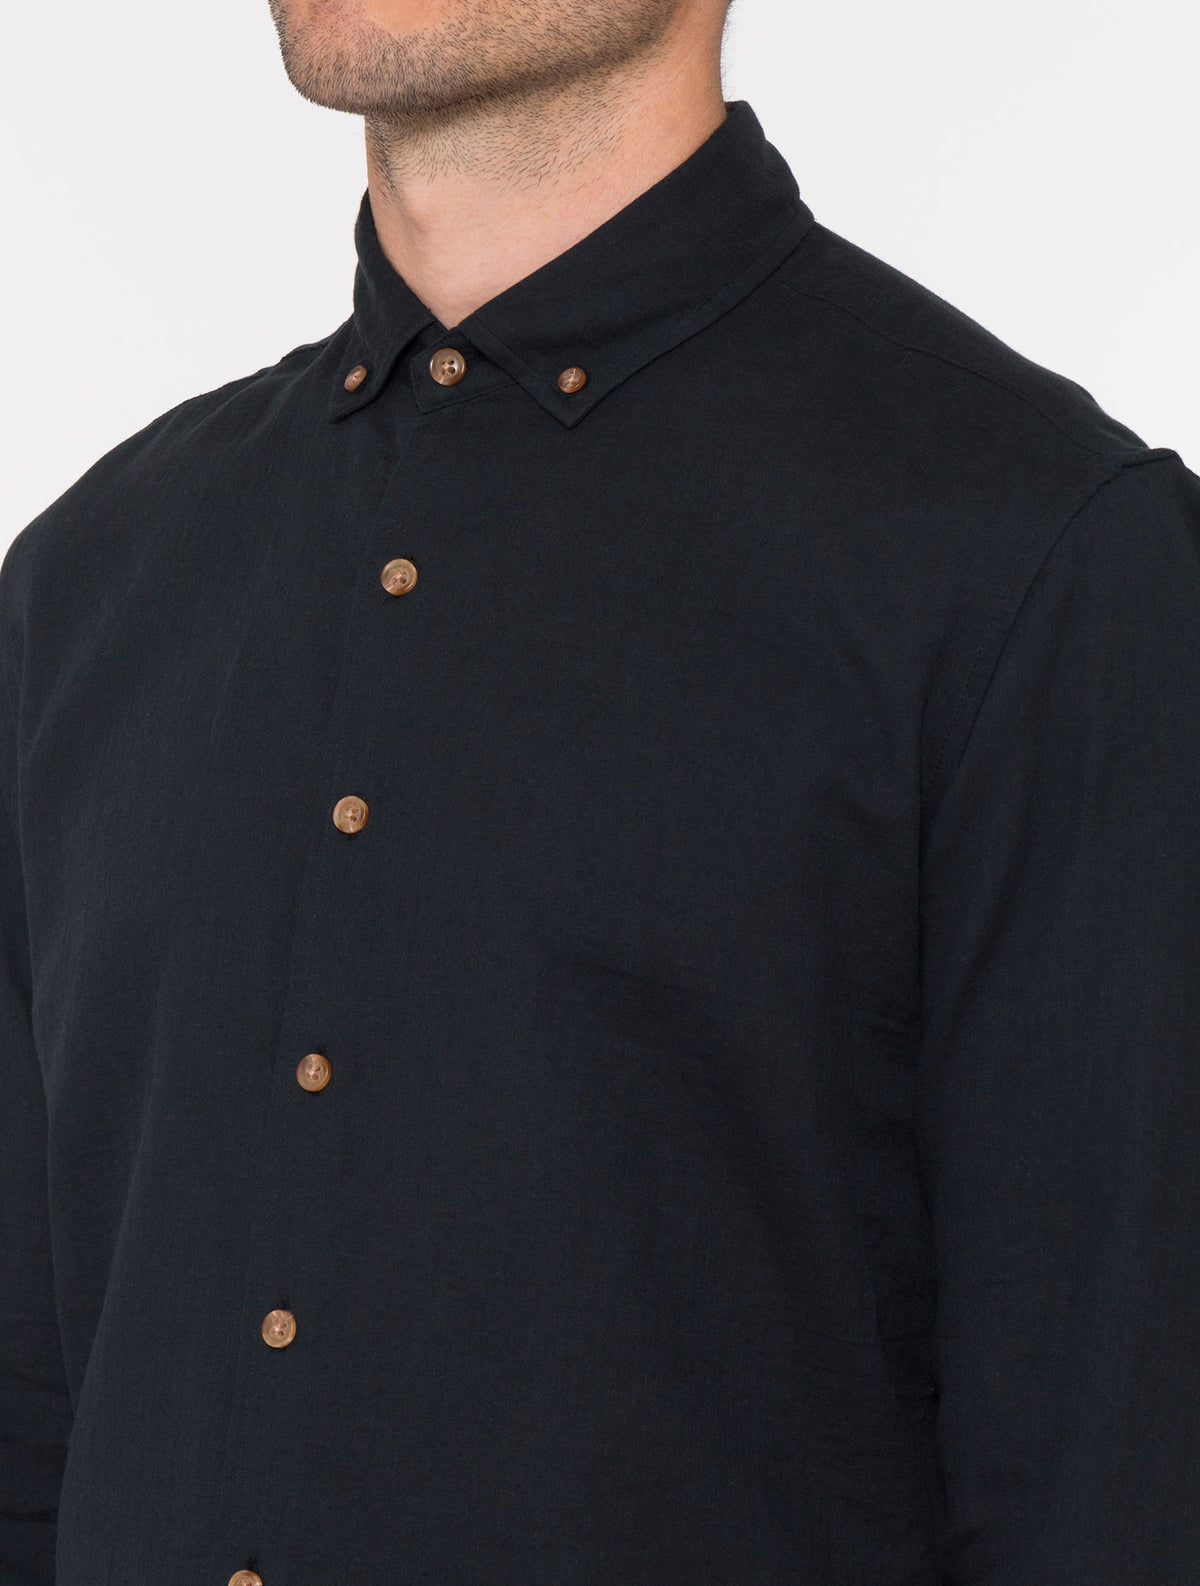 Sidecar In Black Mens Custom Shirts The Hop